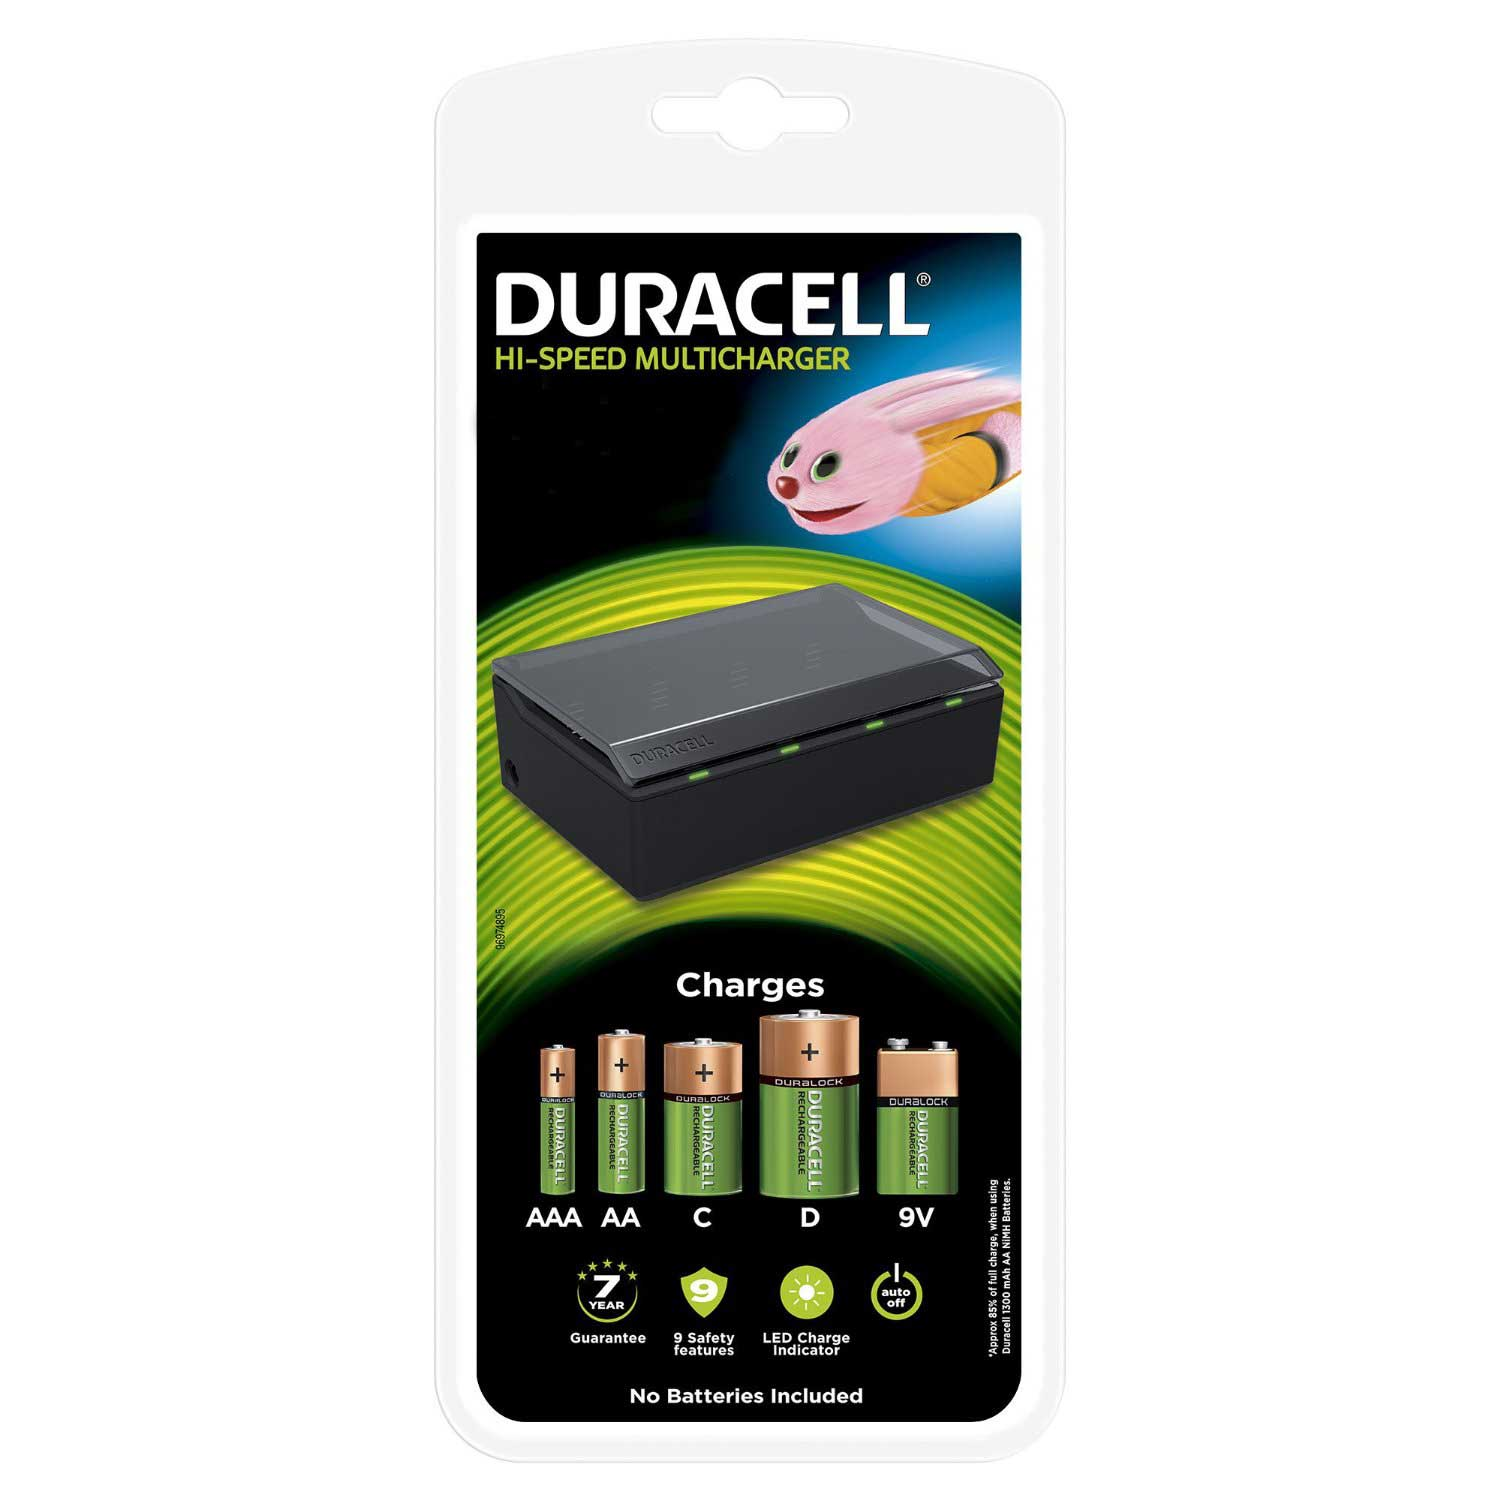 Duracell Universal / Multi Charger for AA, AAA, C, D  and 9V Ni-Mh Batteries